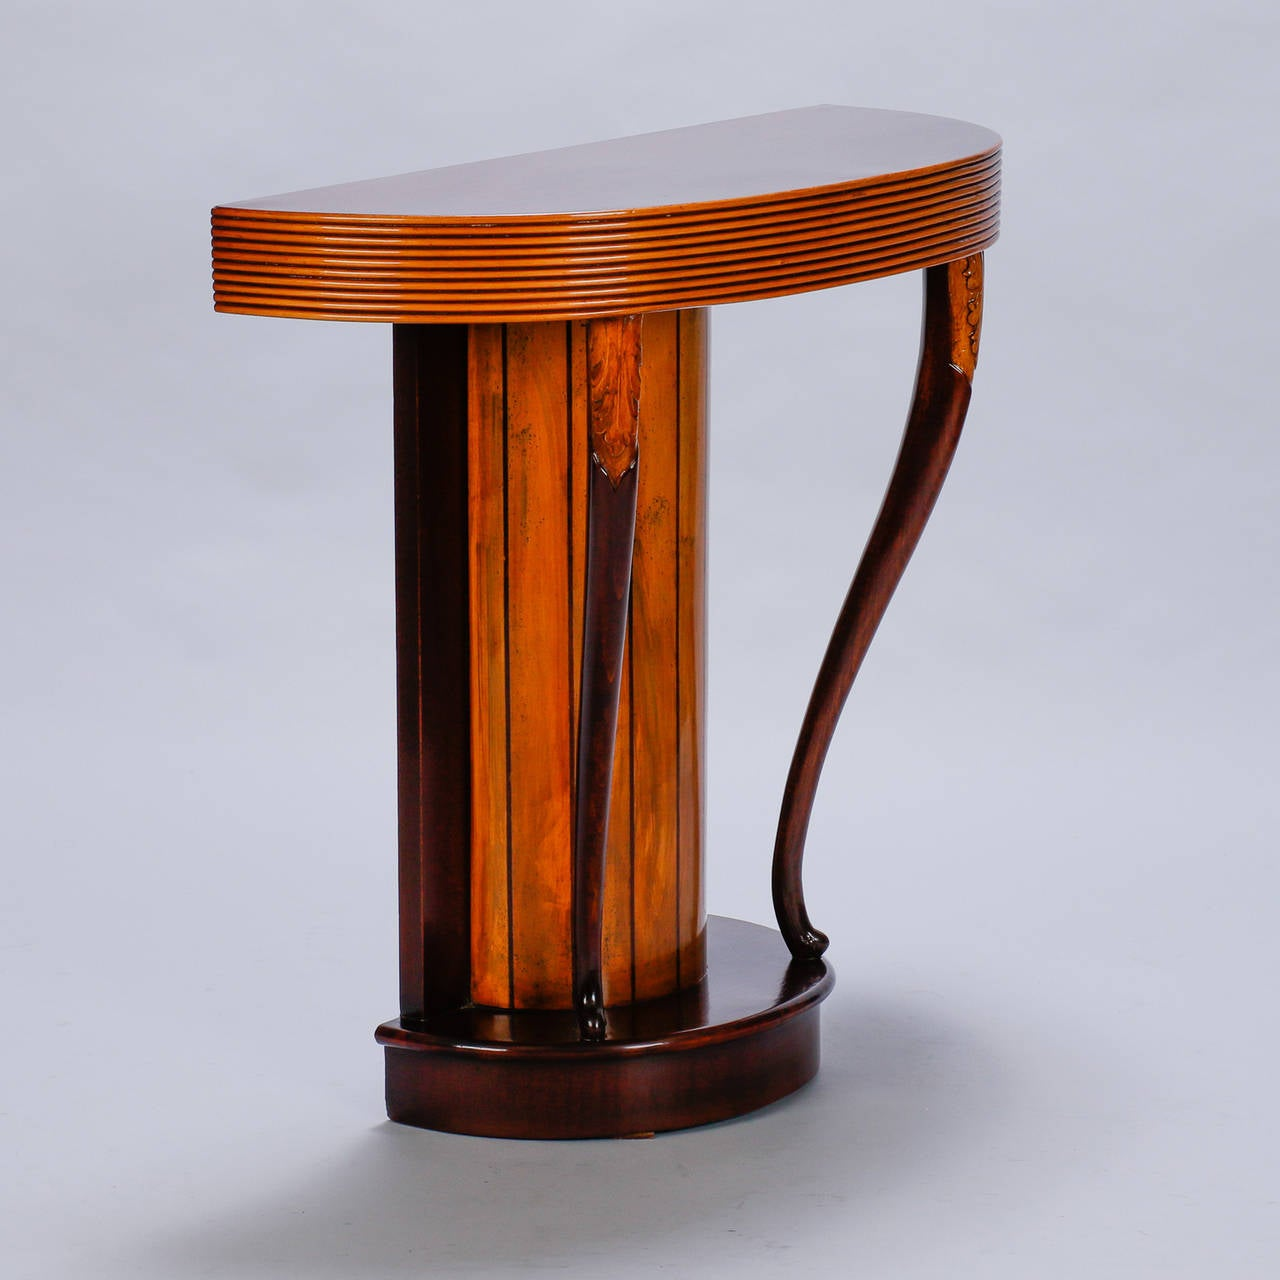 art deco demilune console with reeded edge at 1stdibs. Black Bedroom Furniture Sets. Home Design Ideas